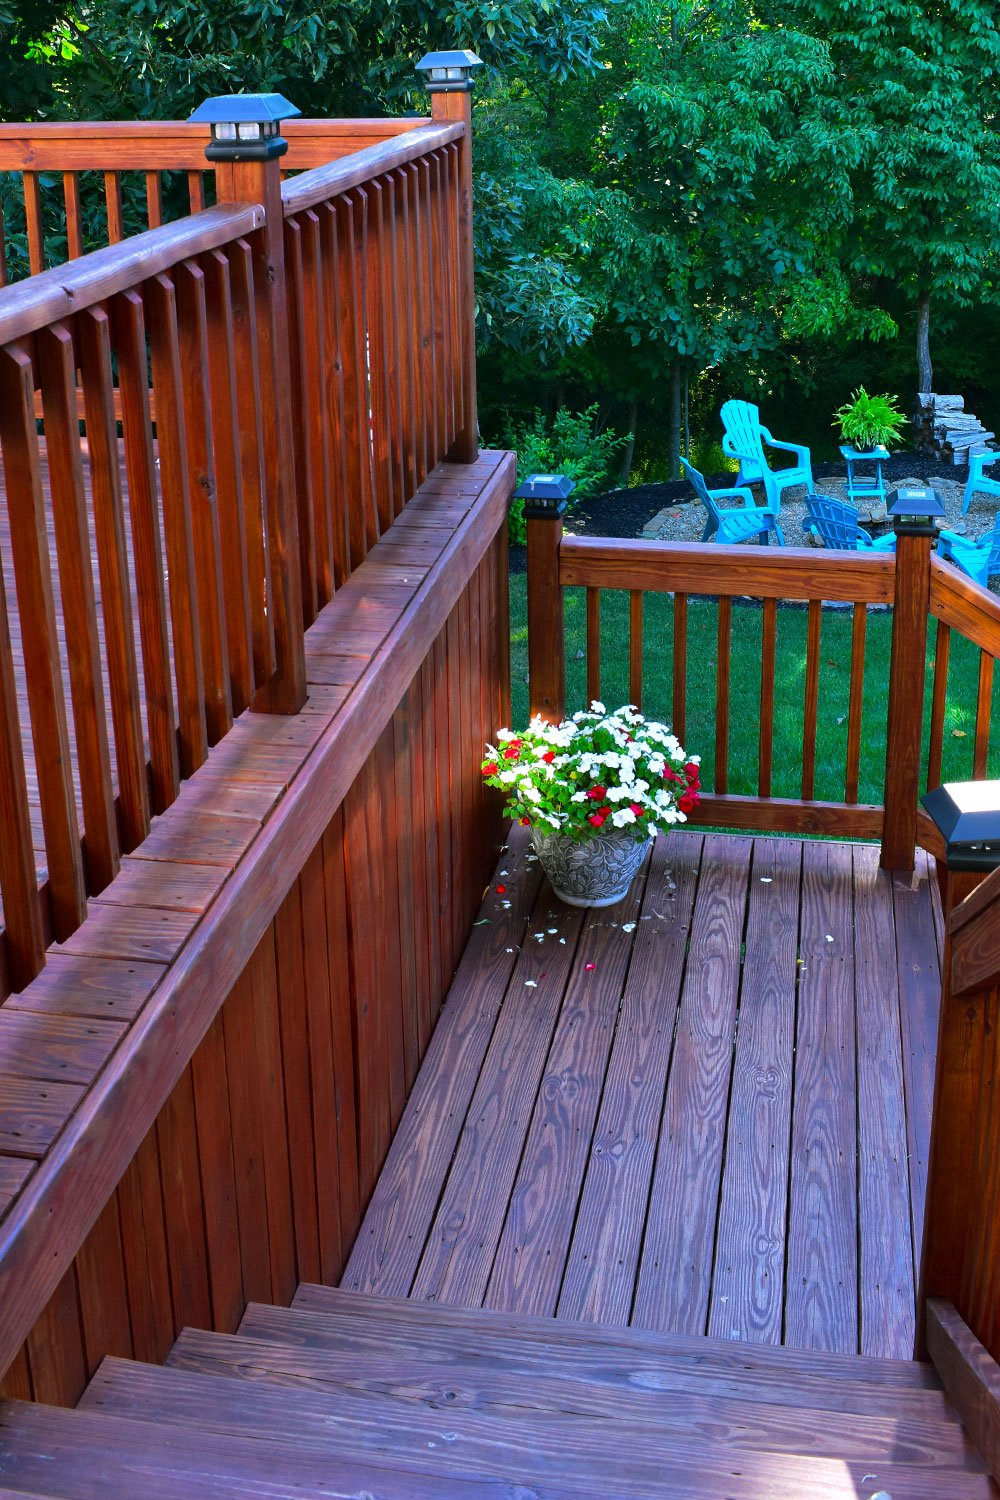 5 Tips For Cleaning And Sealing A Pressure Treated Wood Deck